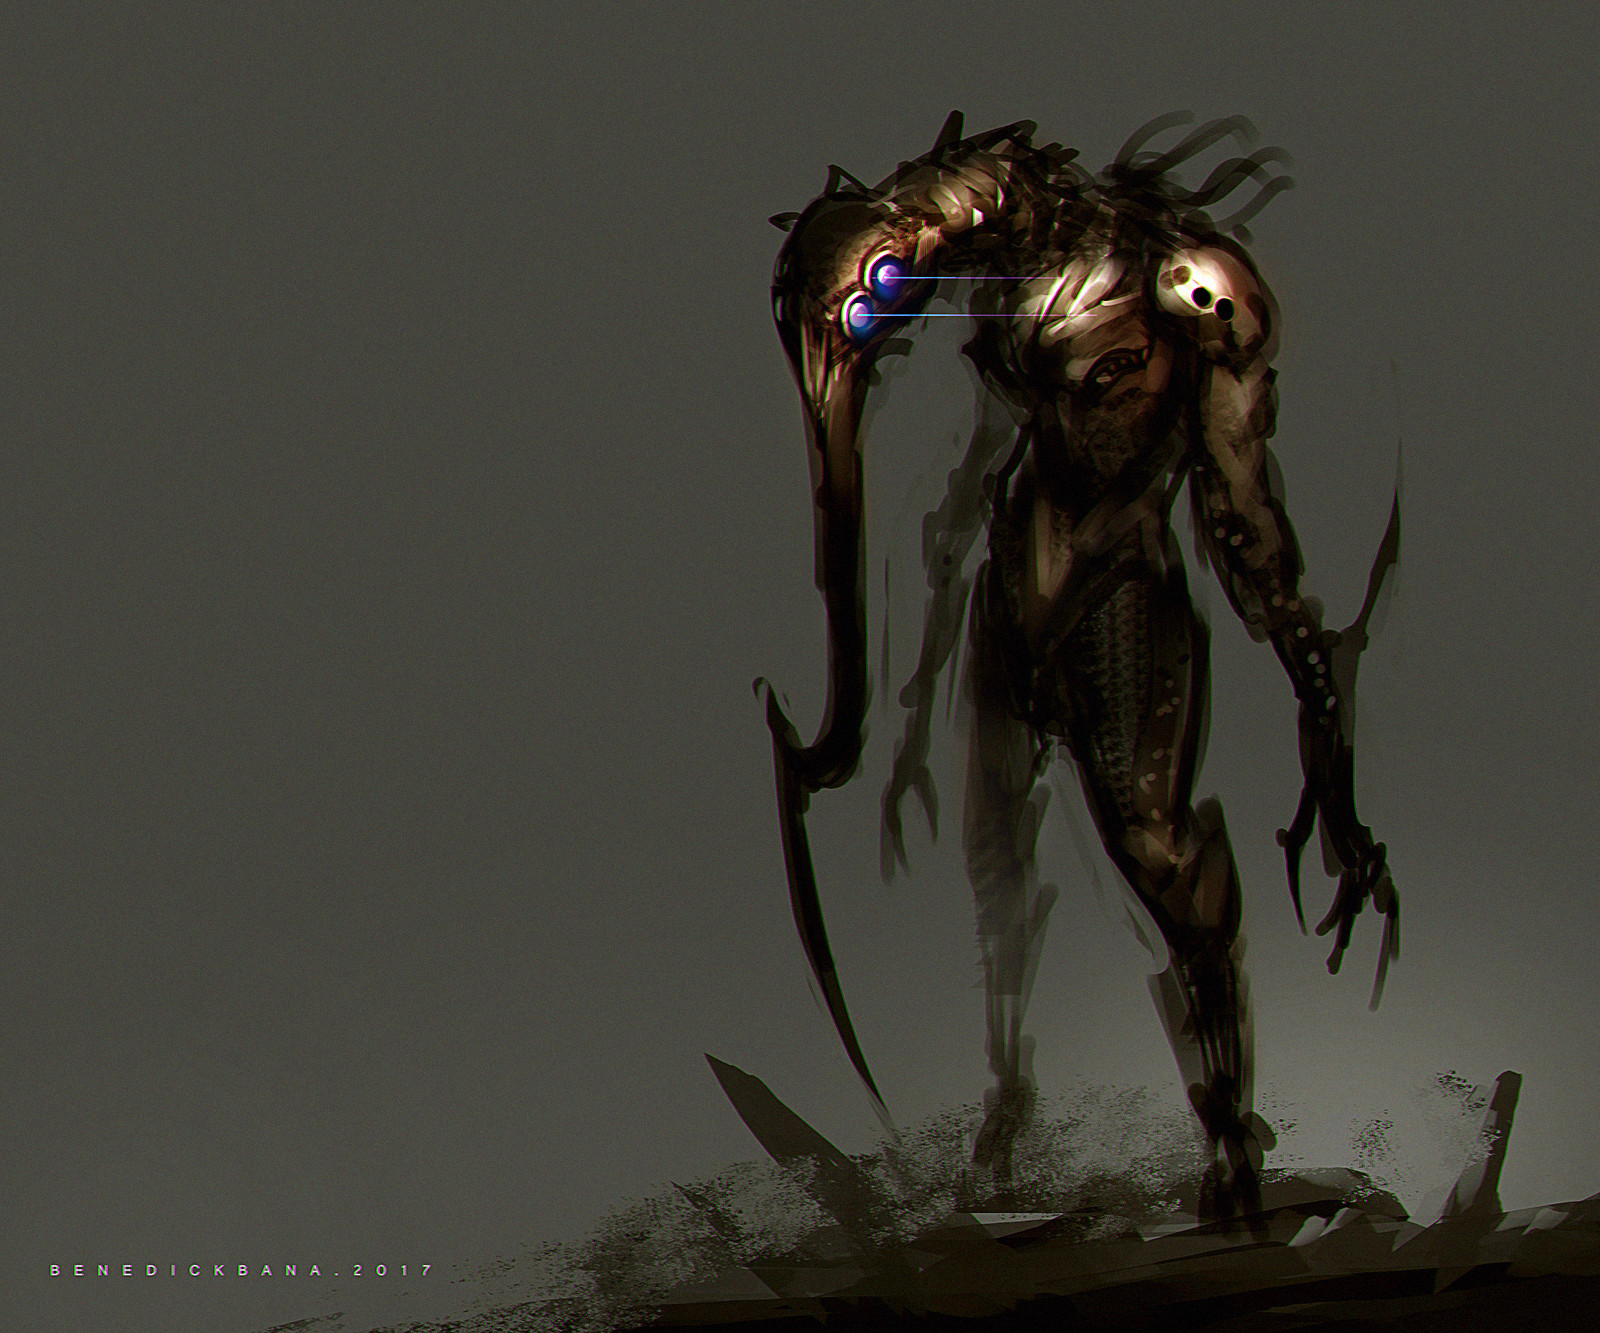 Benedick bana aedes death